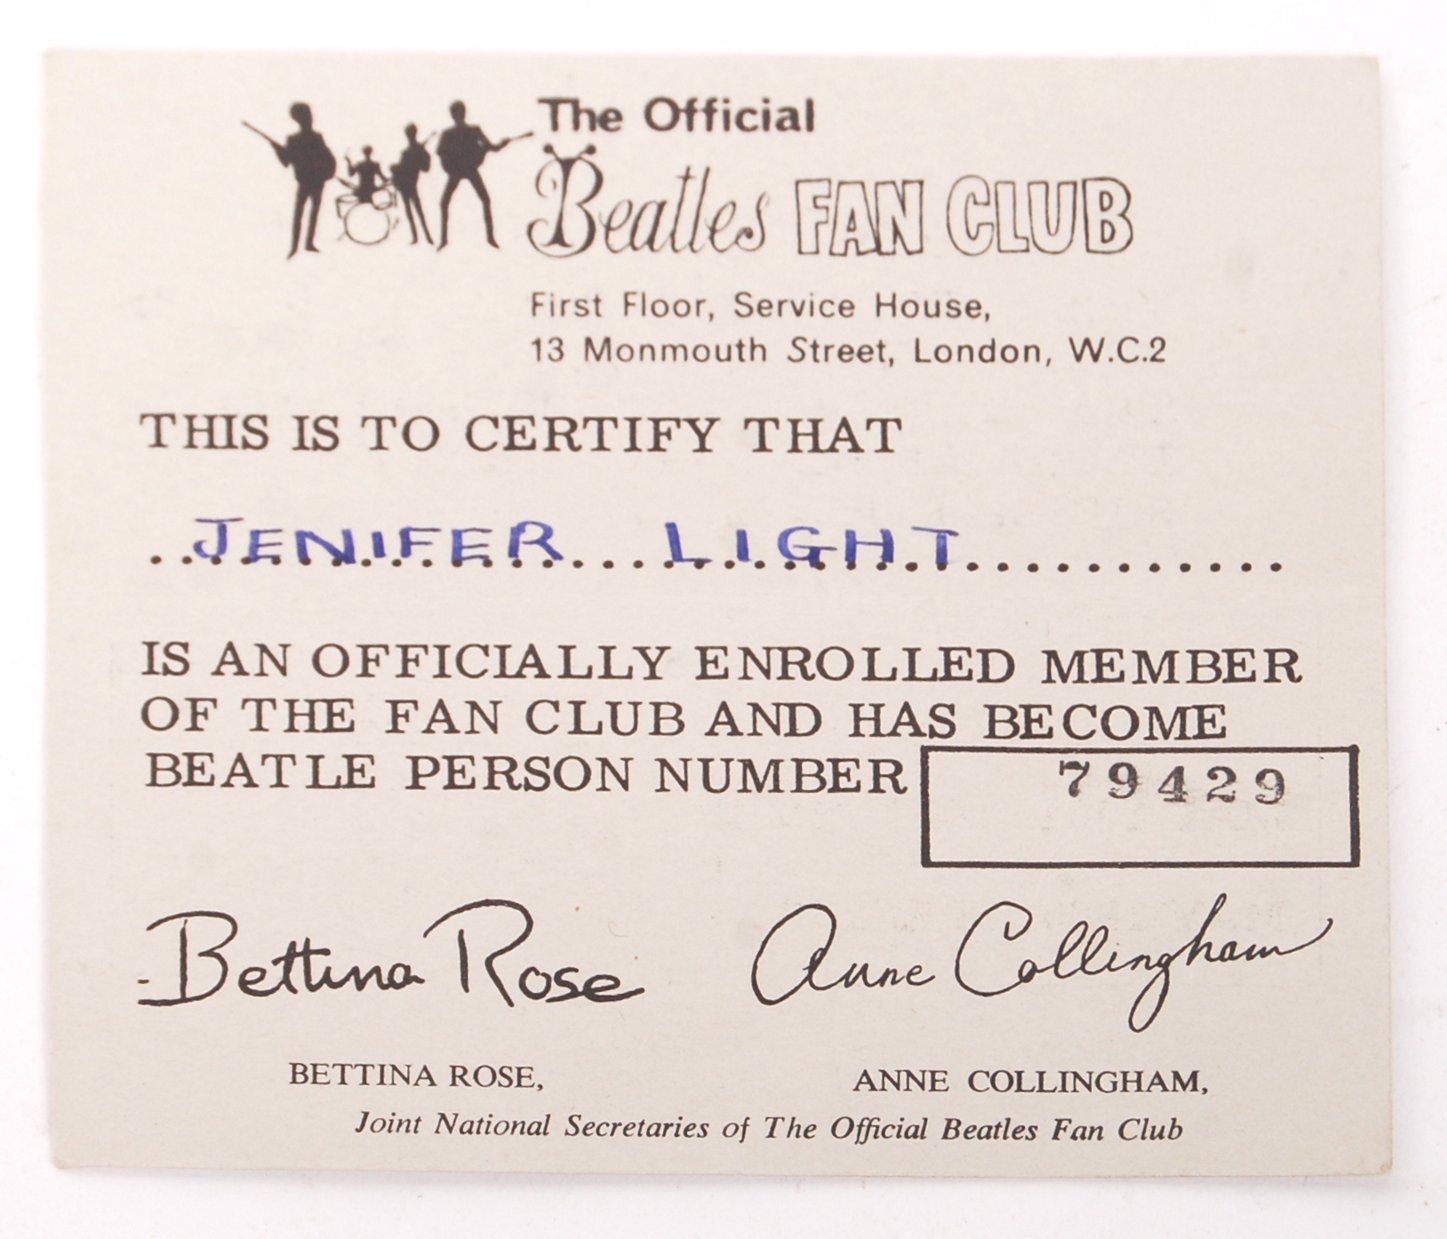 INCREDIBLY RARE PERSONAL BEATLES AUTOGRAPH COLLECT - Image 8 of 12